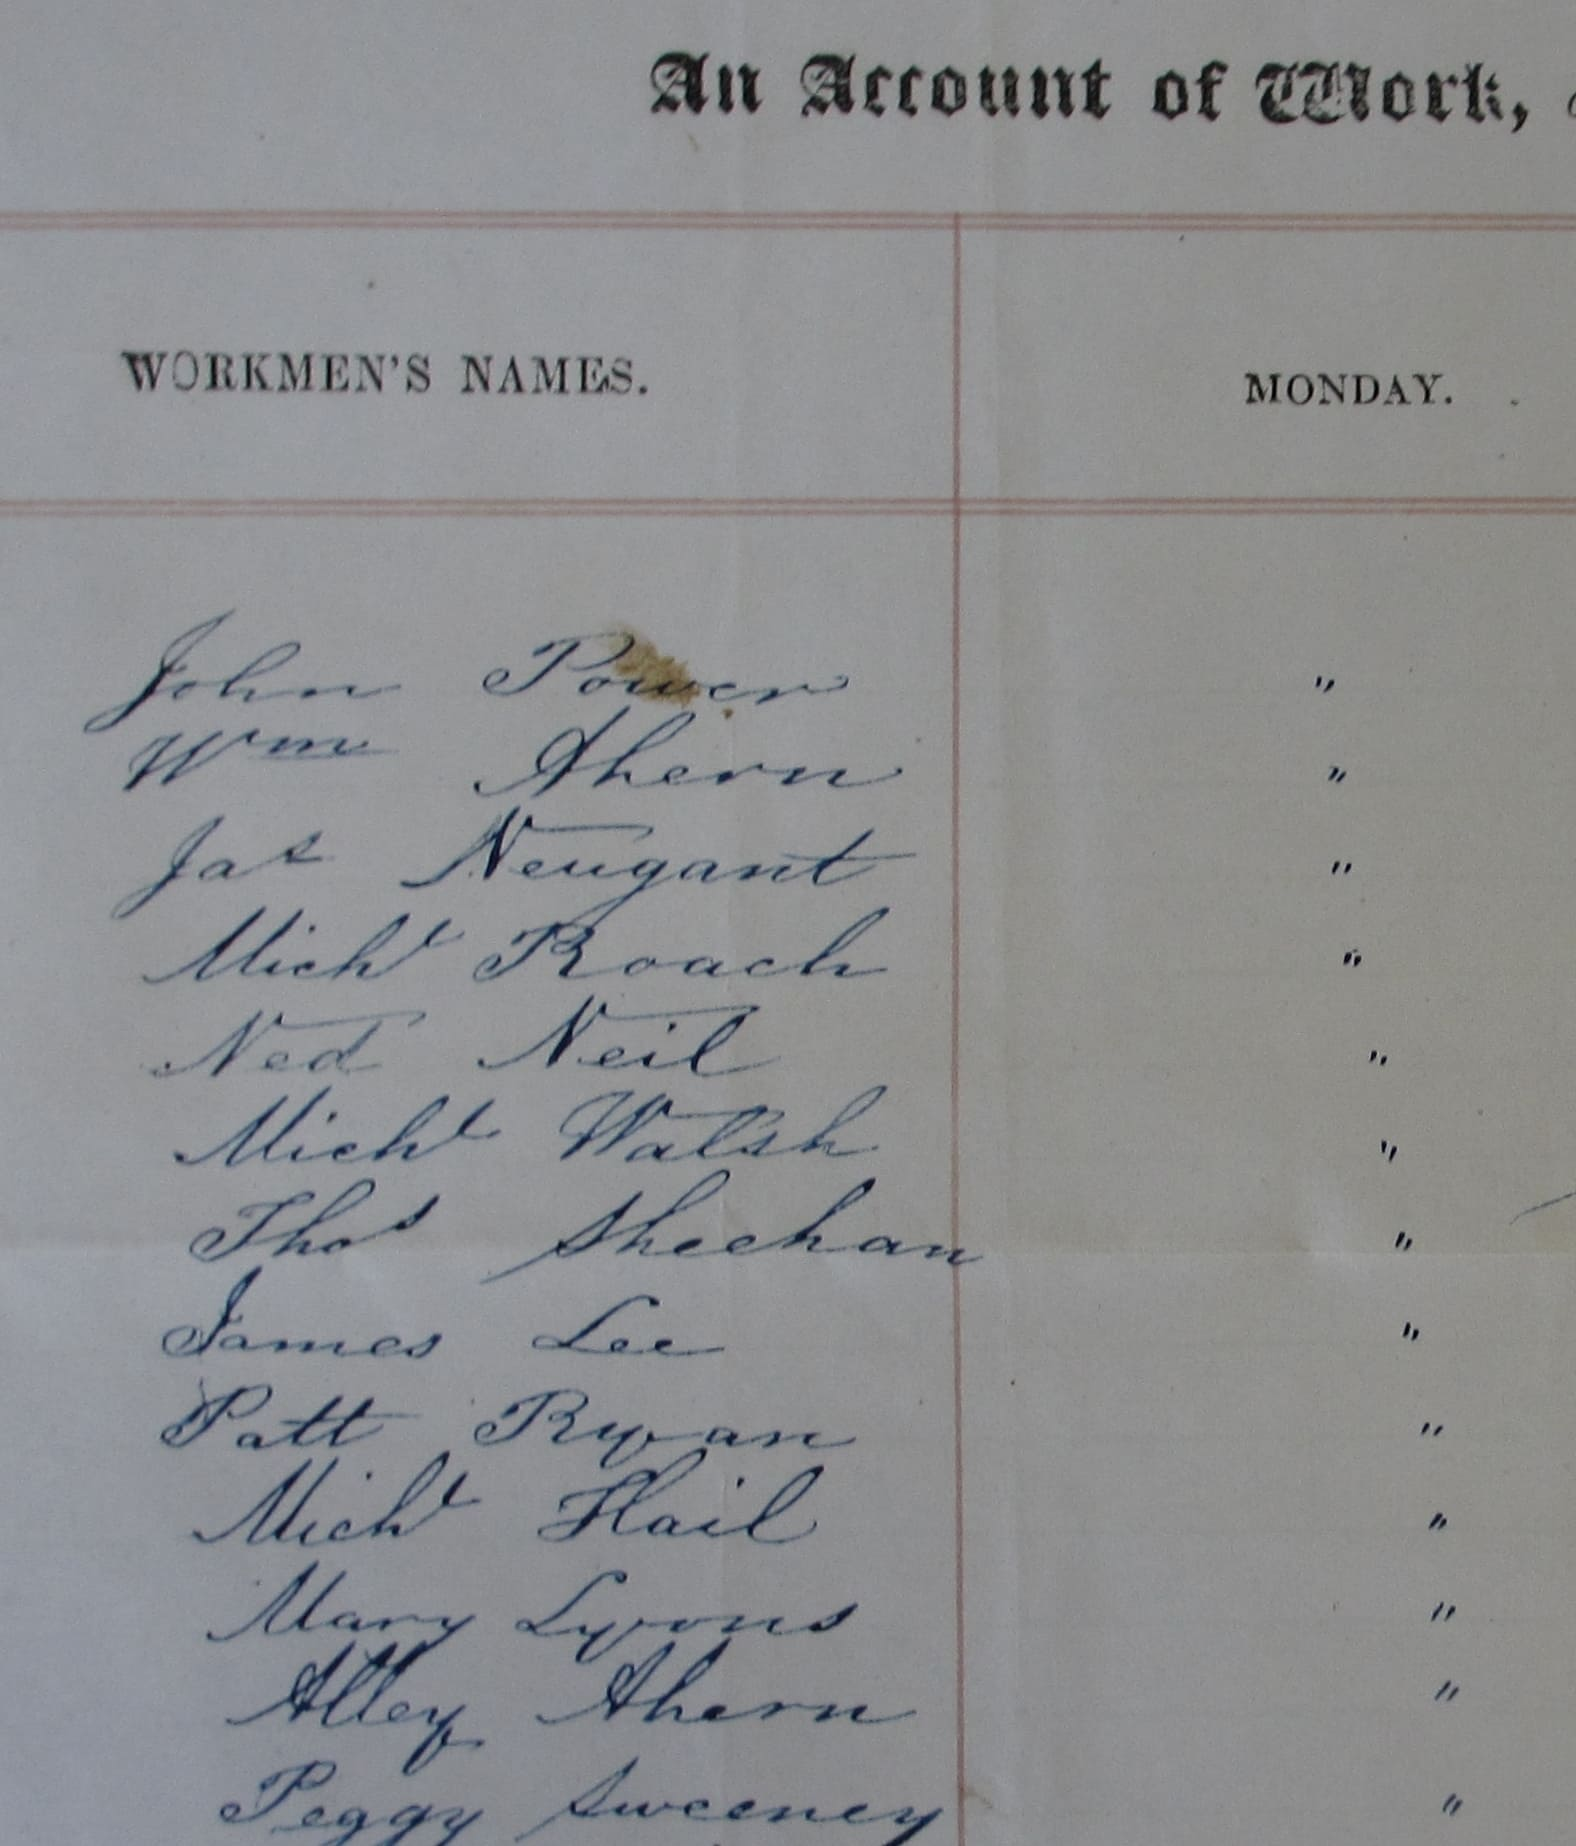 MS 43,760/ 31 List of labourers  (July 1850)  in accounts of Francis E. Curry for expenditure on the Duke of Devonshire's Irish estates